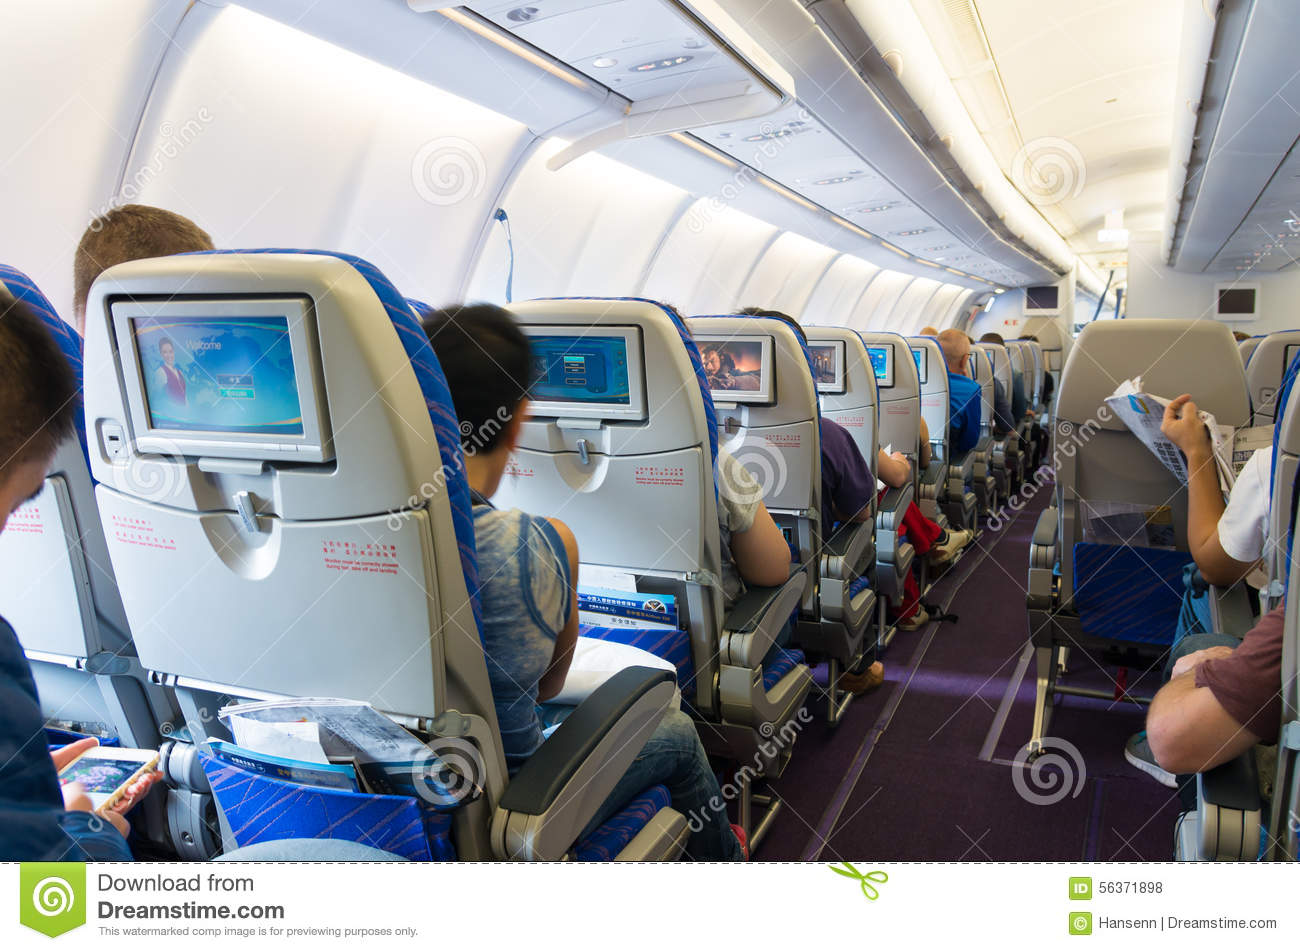 Airplane interior editorial stock photo image 56371898 for Avion jetairfly interieur